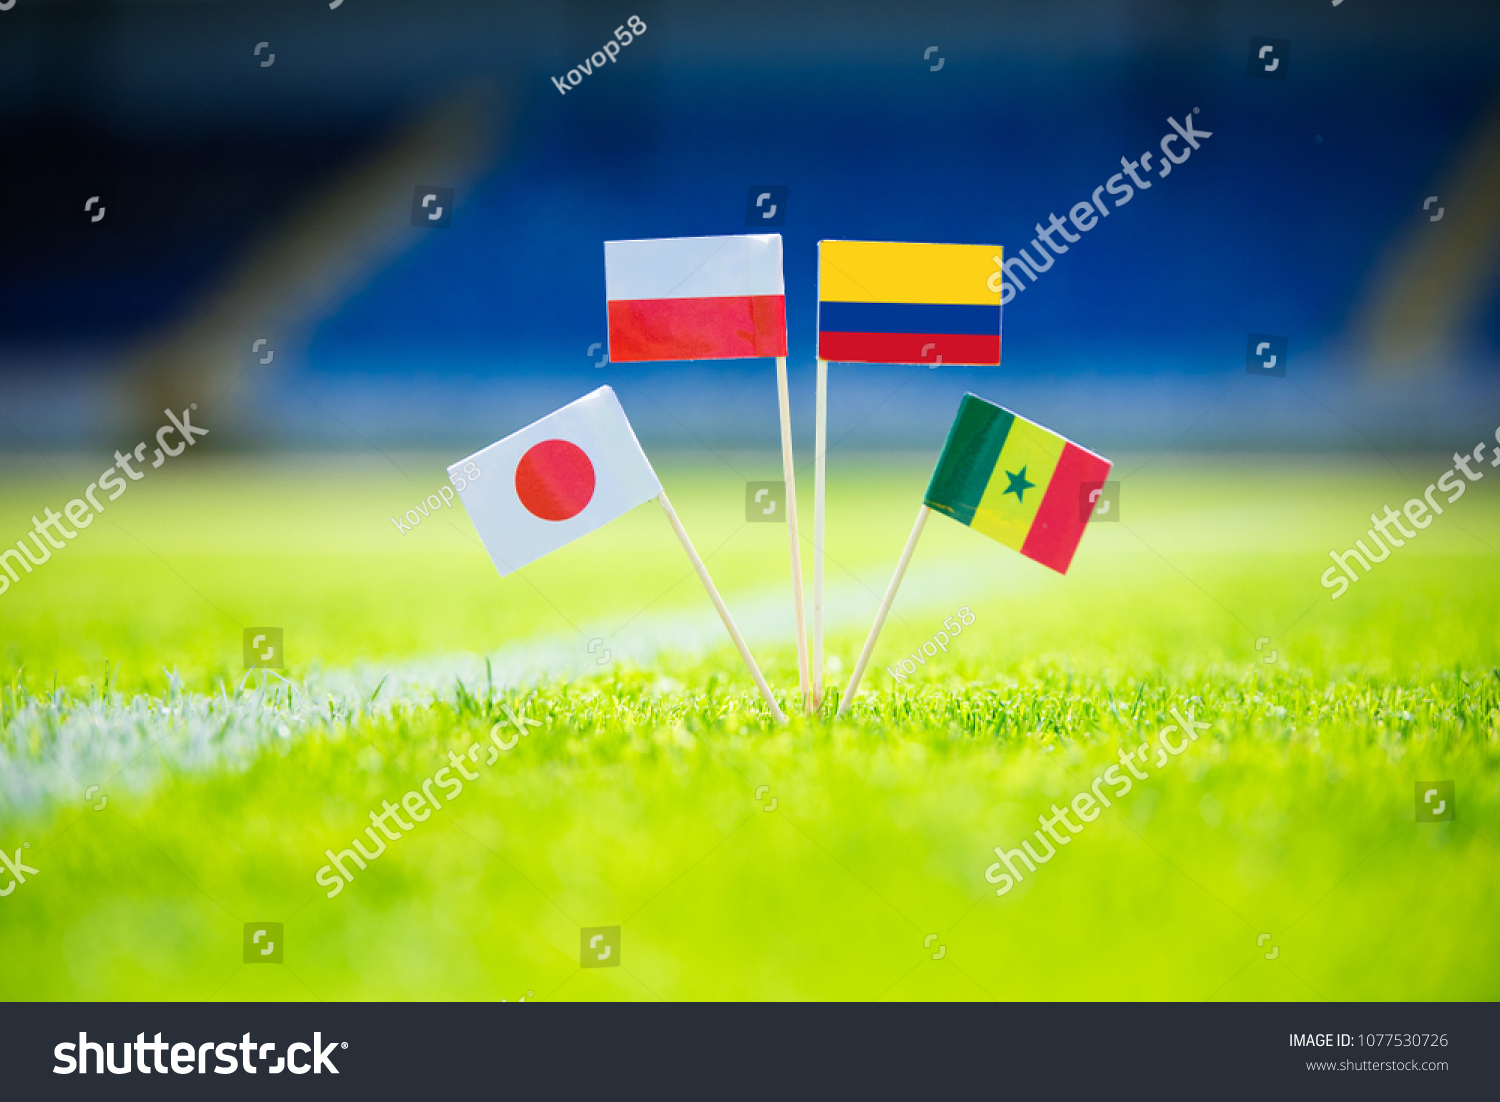 GROUP H draw in Russia 2018  - Poland, Senegal, Columbia, Japan national Flag and football ball on green grass. Fans, support photo, edit space. Original wallpaper for Football World Cup, Russia 2018 #1077530726